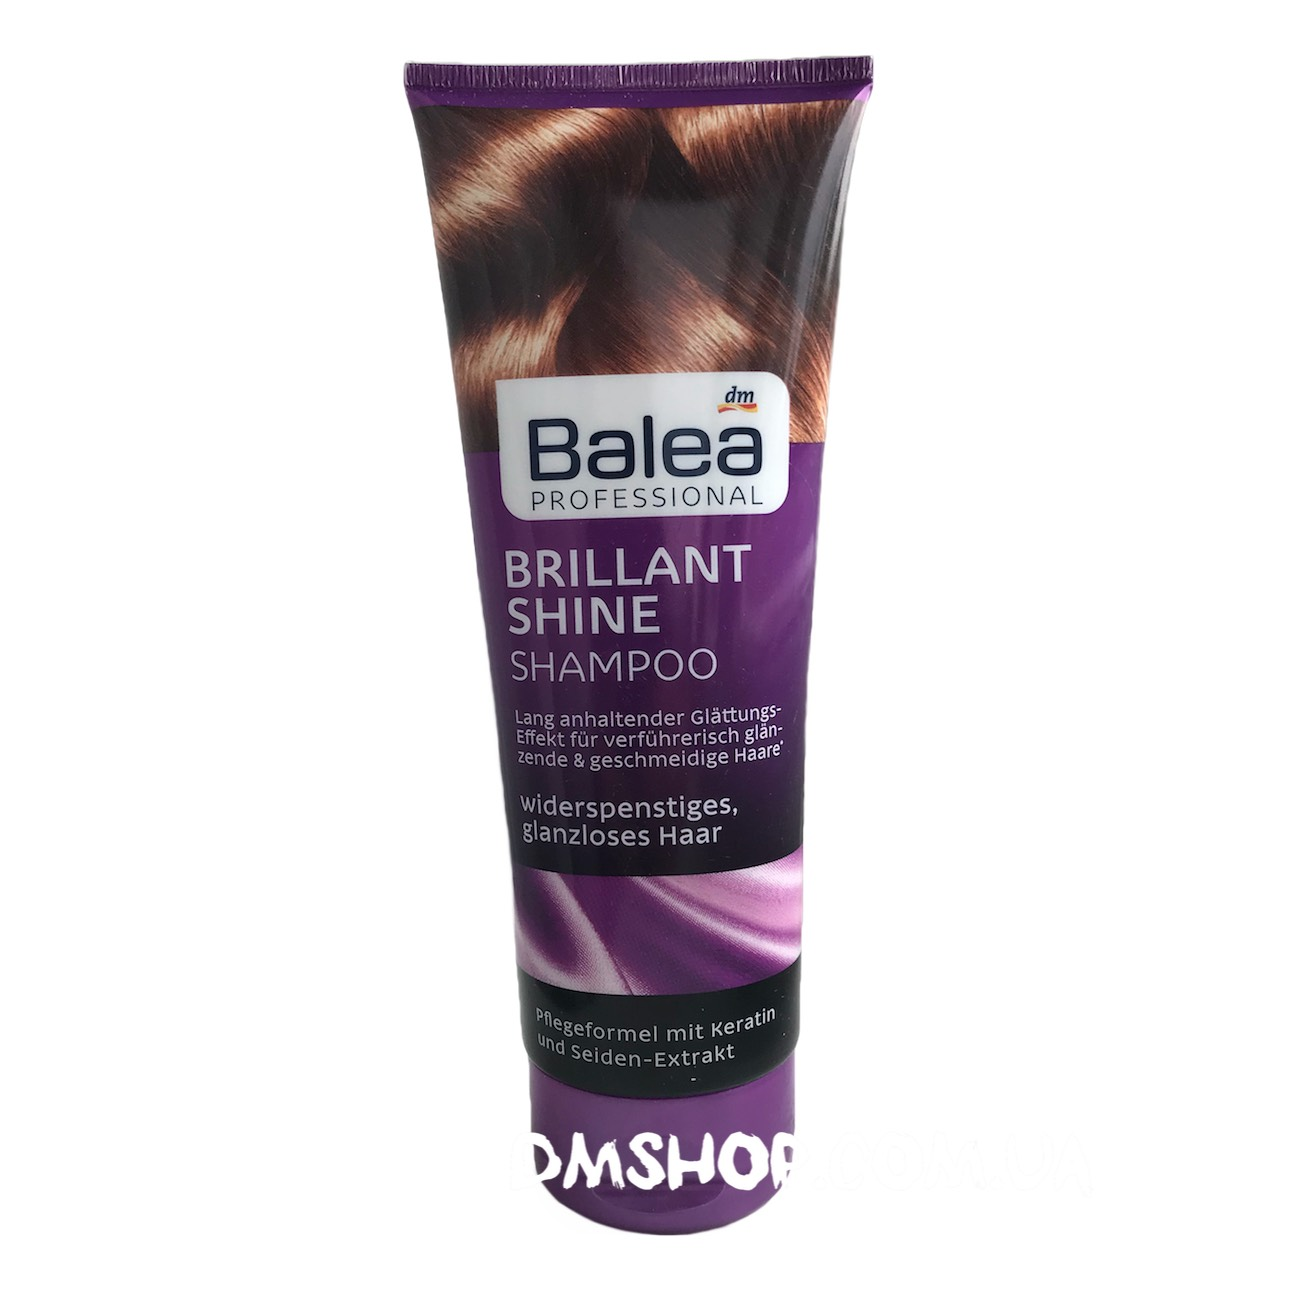 Balea Shampoo Brillant Shine Dmshop